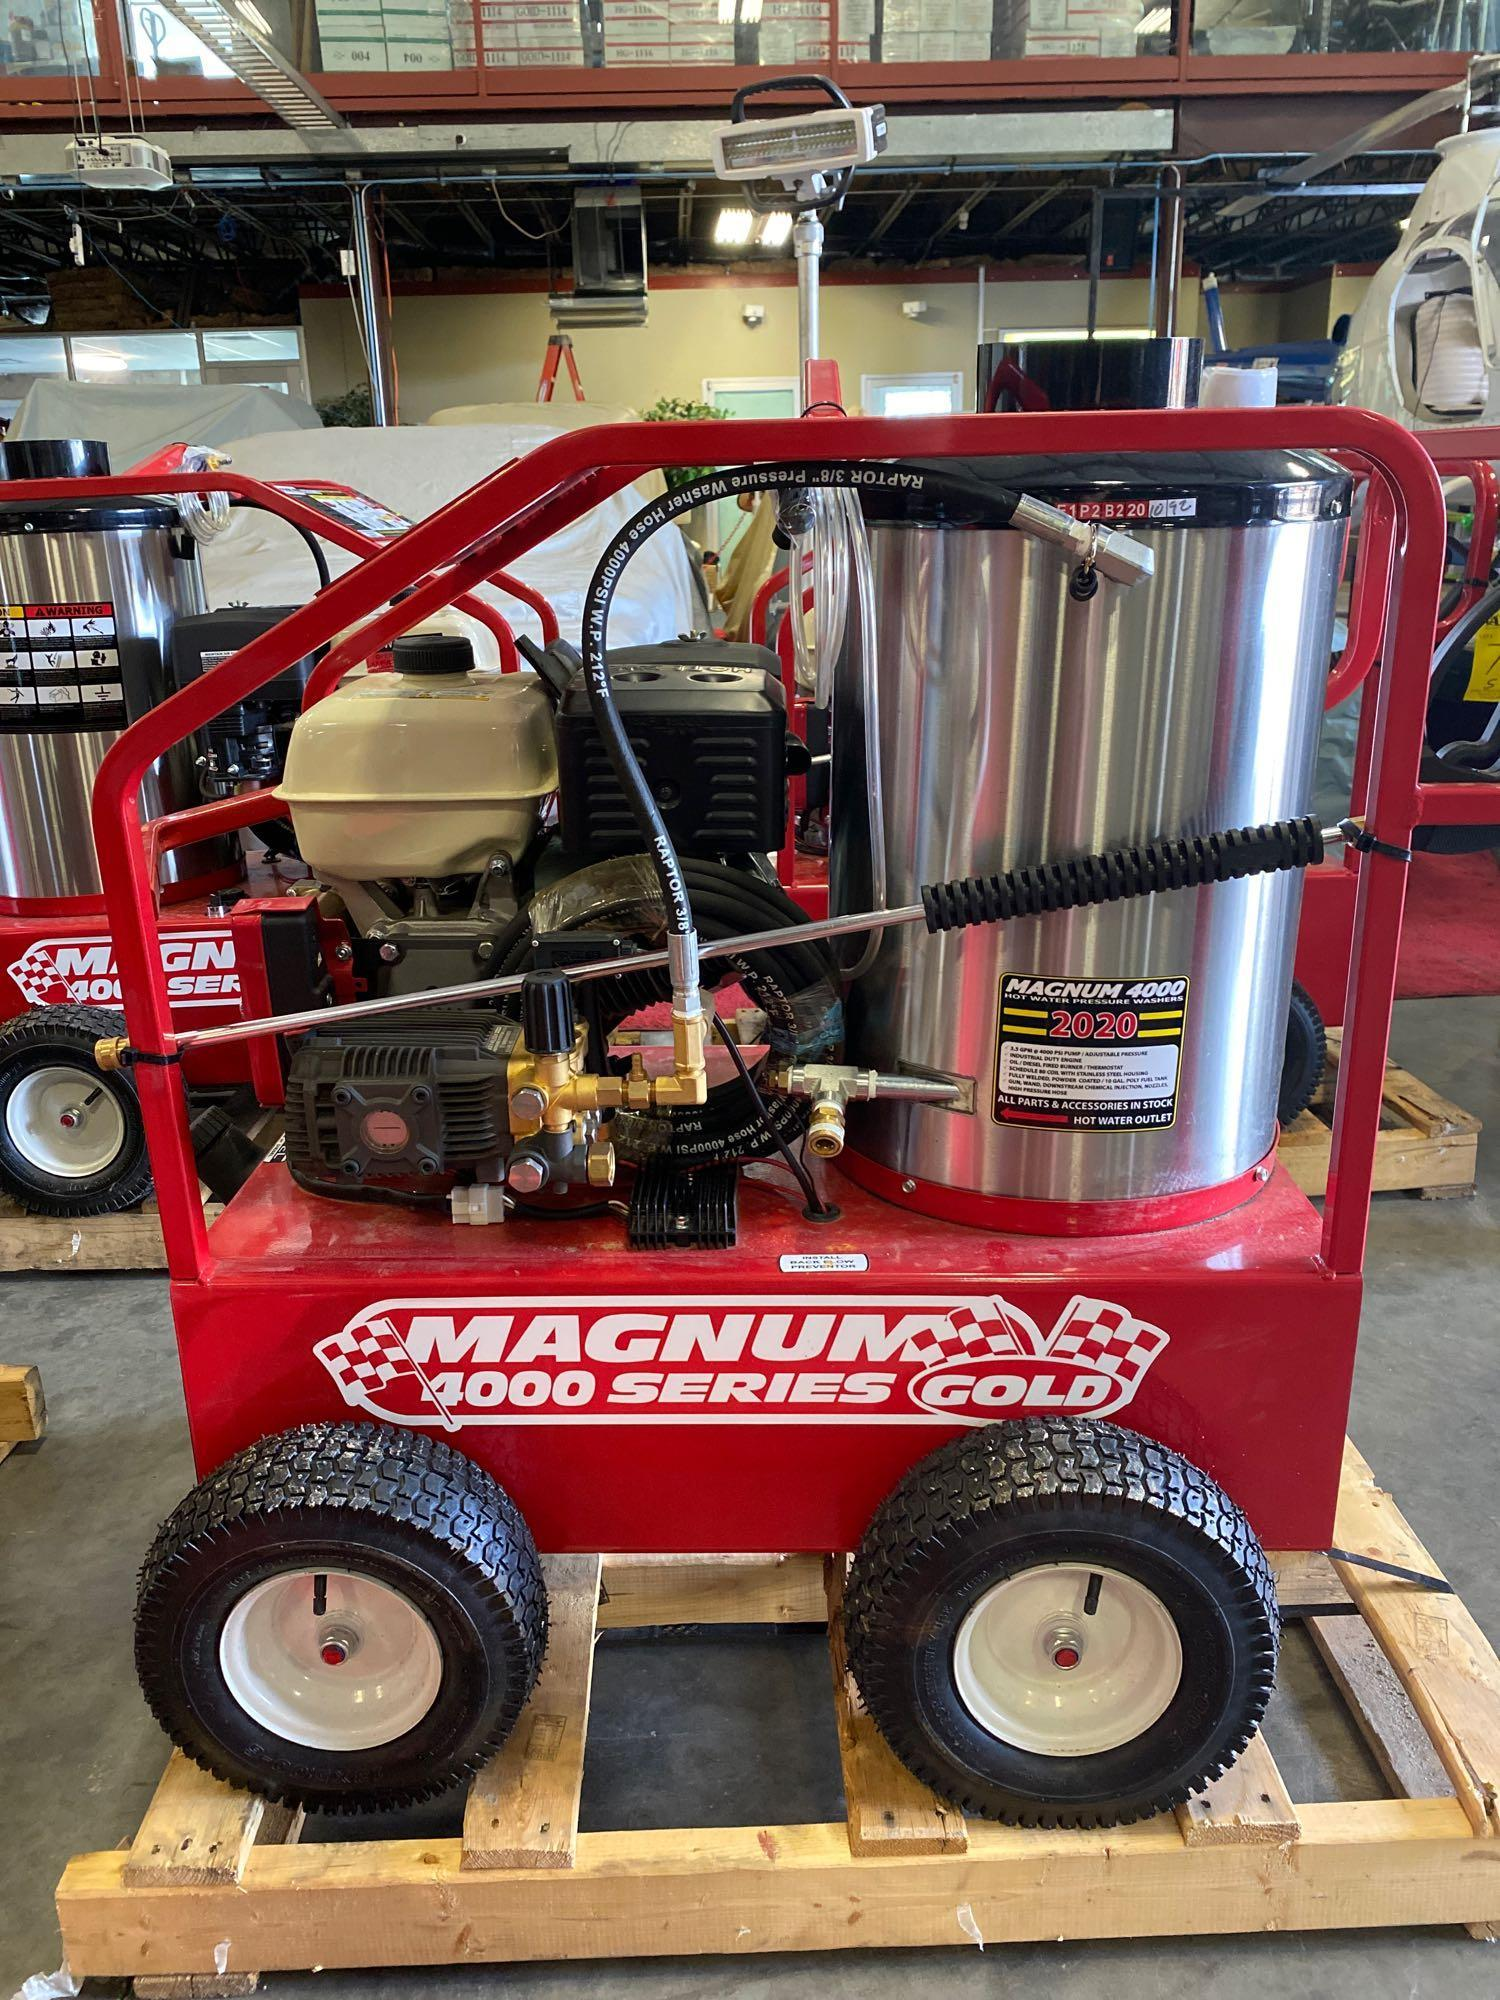 NEW/UNUSED 2020 MAGNUM 4000 HEATED PRESSURE WASHER, ELECTRIC START - Image 2 of 6